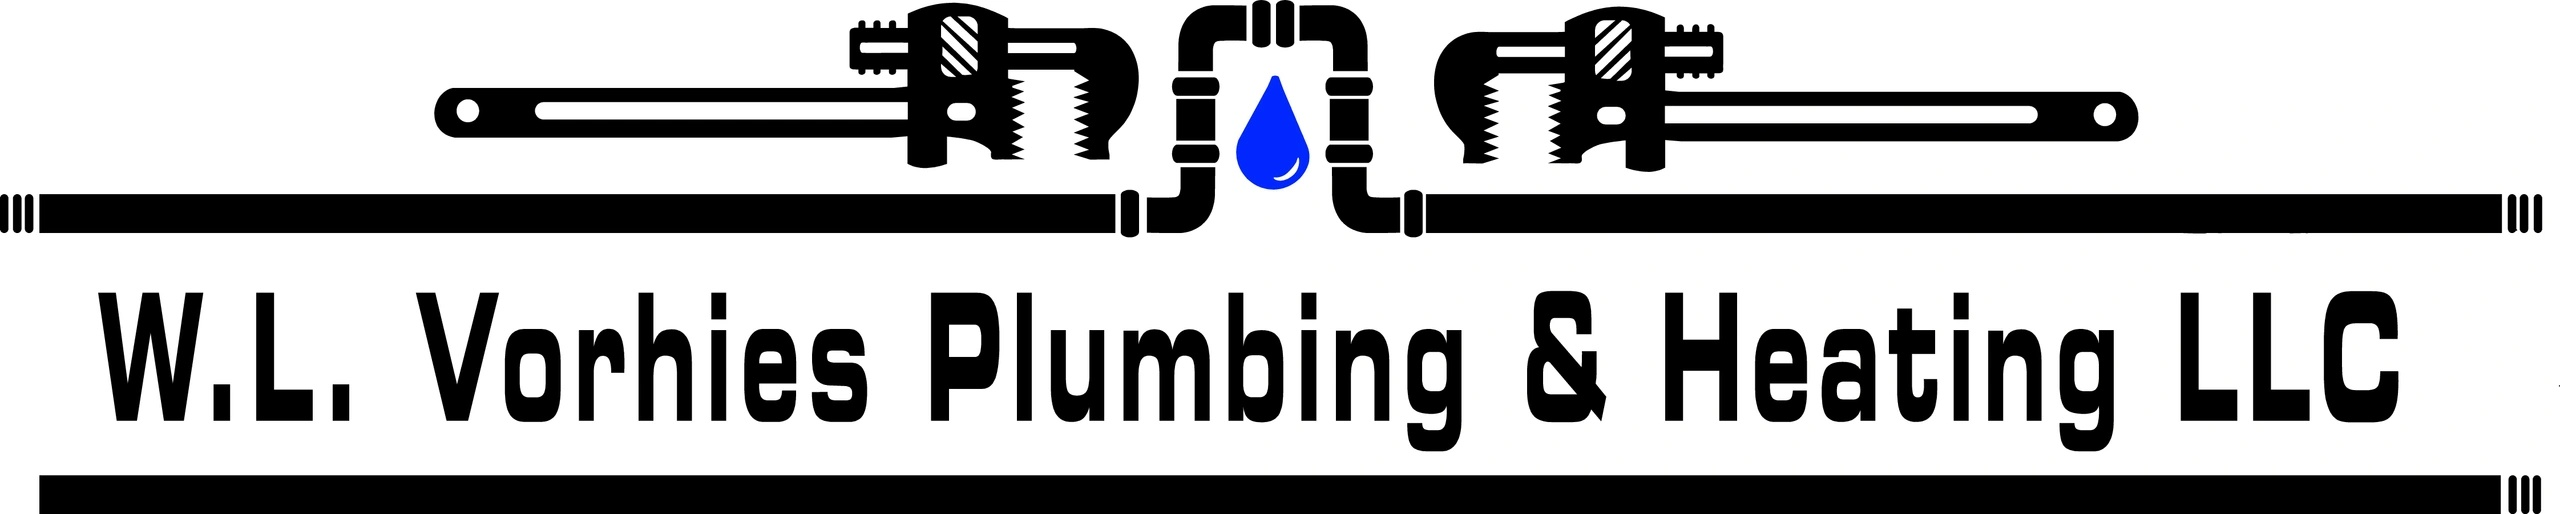 W.L. Vorhies Plumbing and Heating